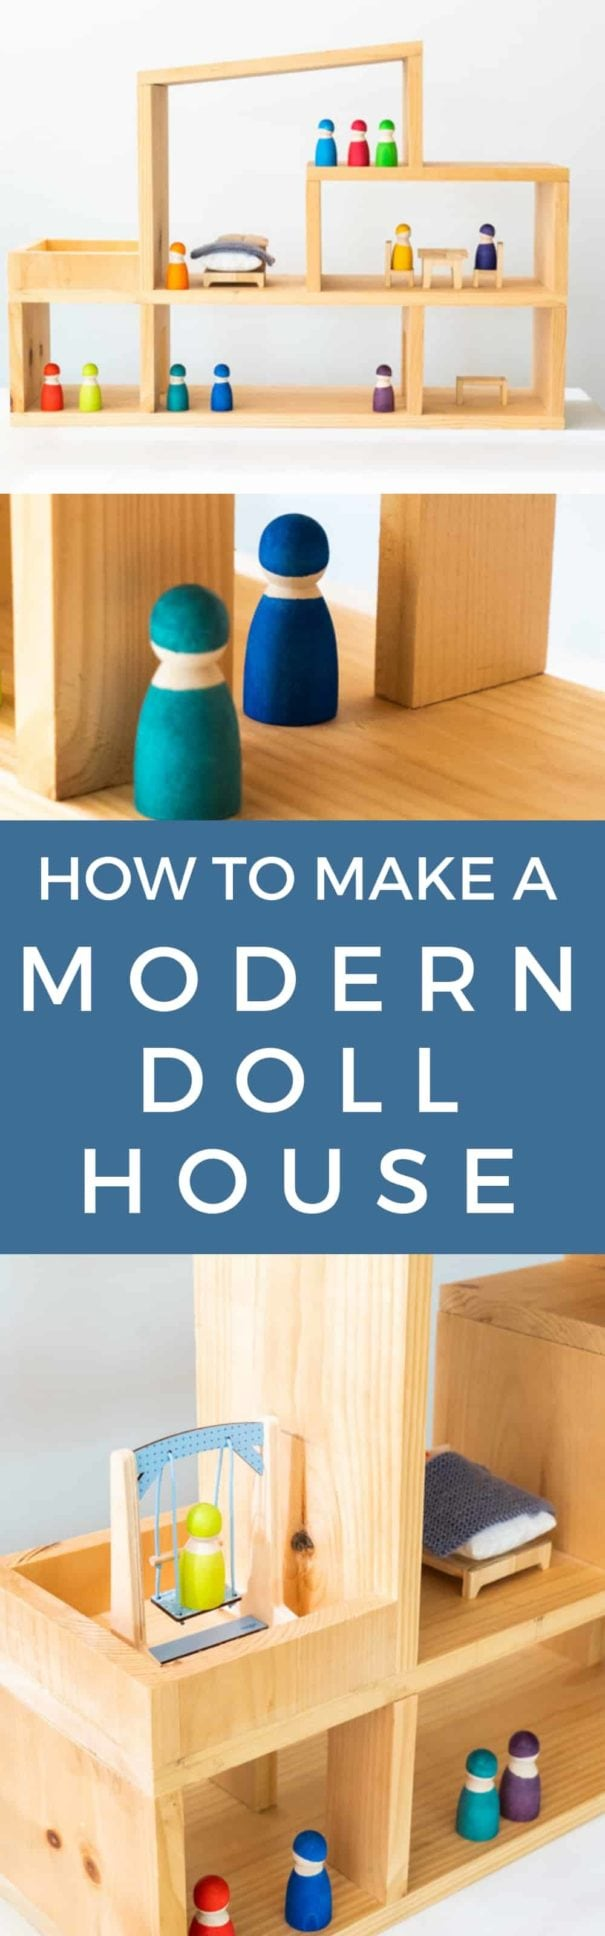 Step by step instructions on how to build a modern dollhouse for your kids.  Easy to make DIY plans and can be completed in 1 day.  Final cost is $35 for a life long toy that can be passed on for generations.